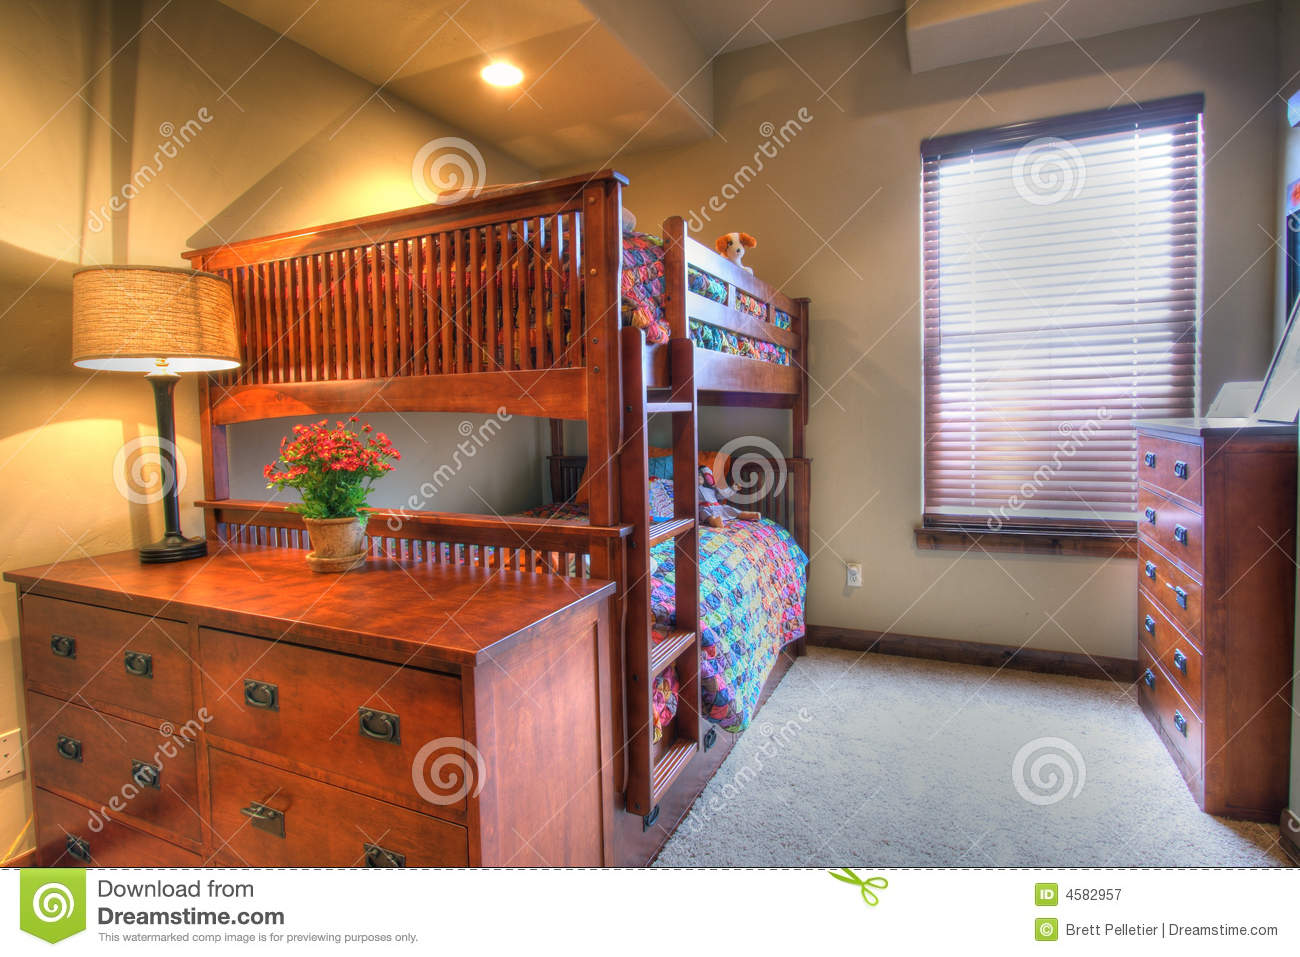 Kids Bedroom Bunk Bed  Kids Bedroom Bunk Bed Royalty Free Stock Photography  Image 4582957. Kids Bedroom Bunk Beds